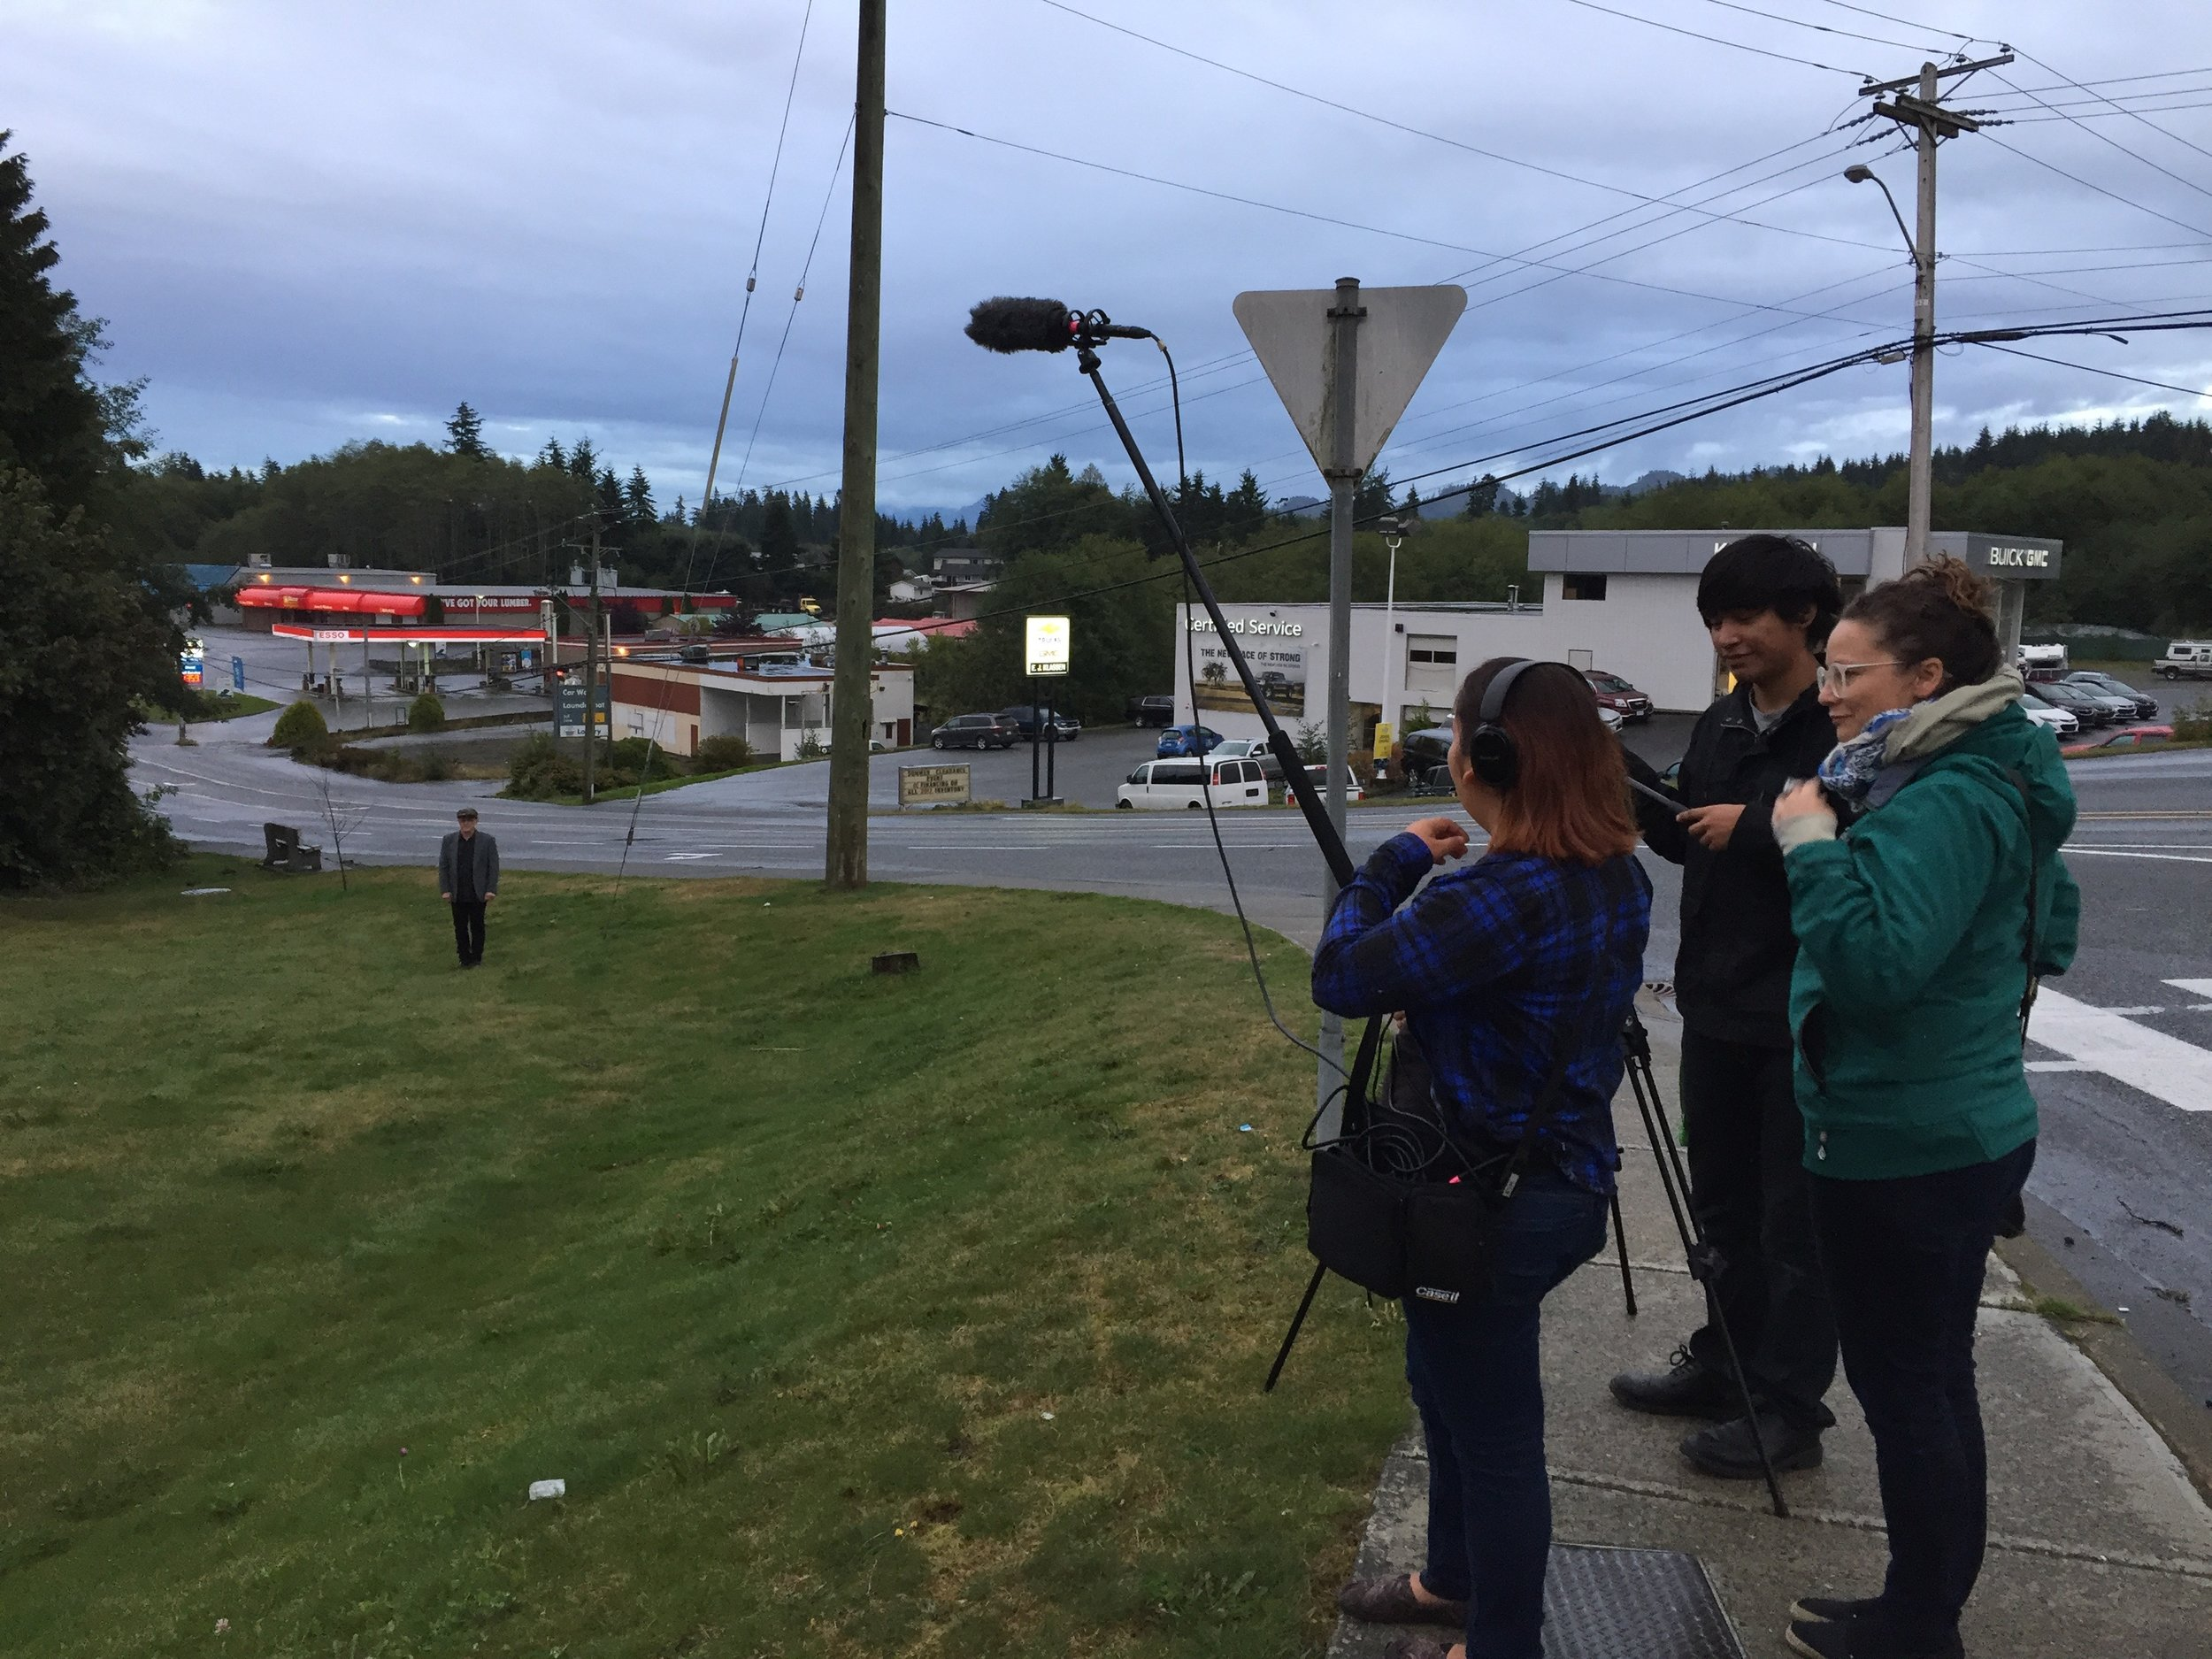 At 7pm we met at the Kwa'Lilas hotel to have our evening shoot. Thanks to Kelly/sound, Peter/acting, Odessa/Assistant Director, Lisa g/PA and of course Stephen/writer, director!